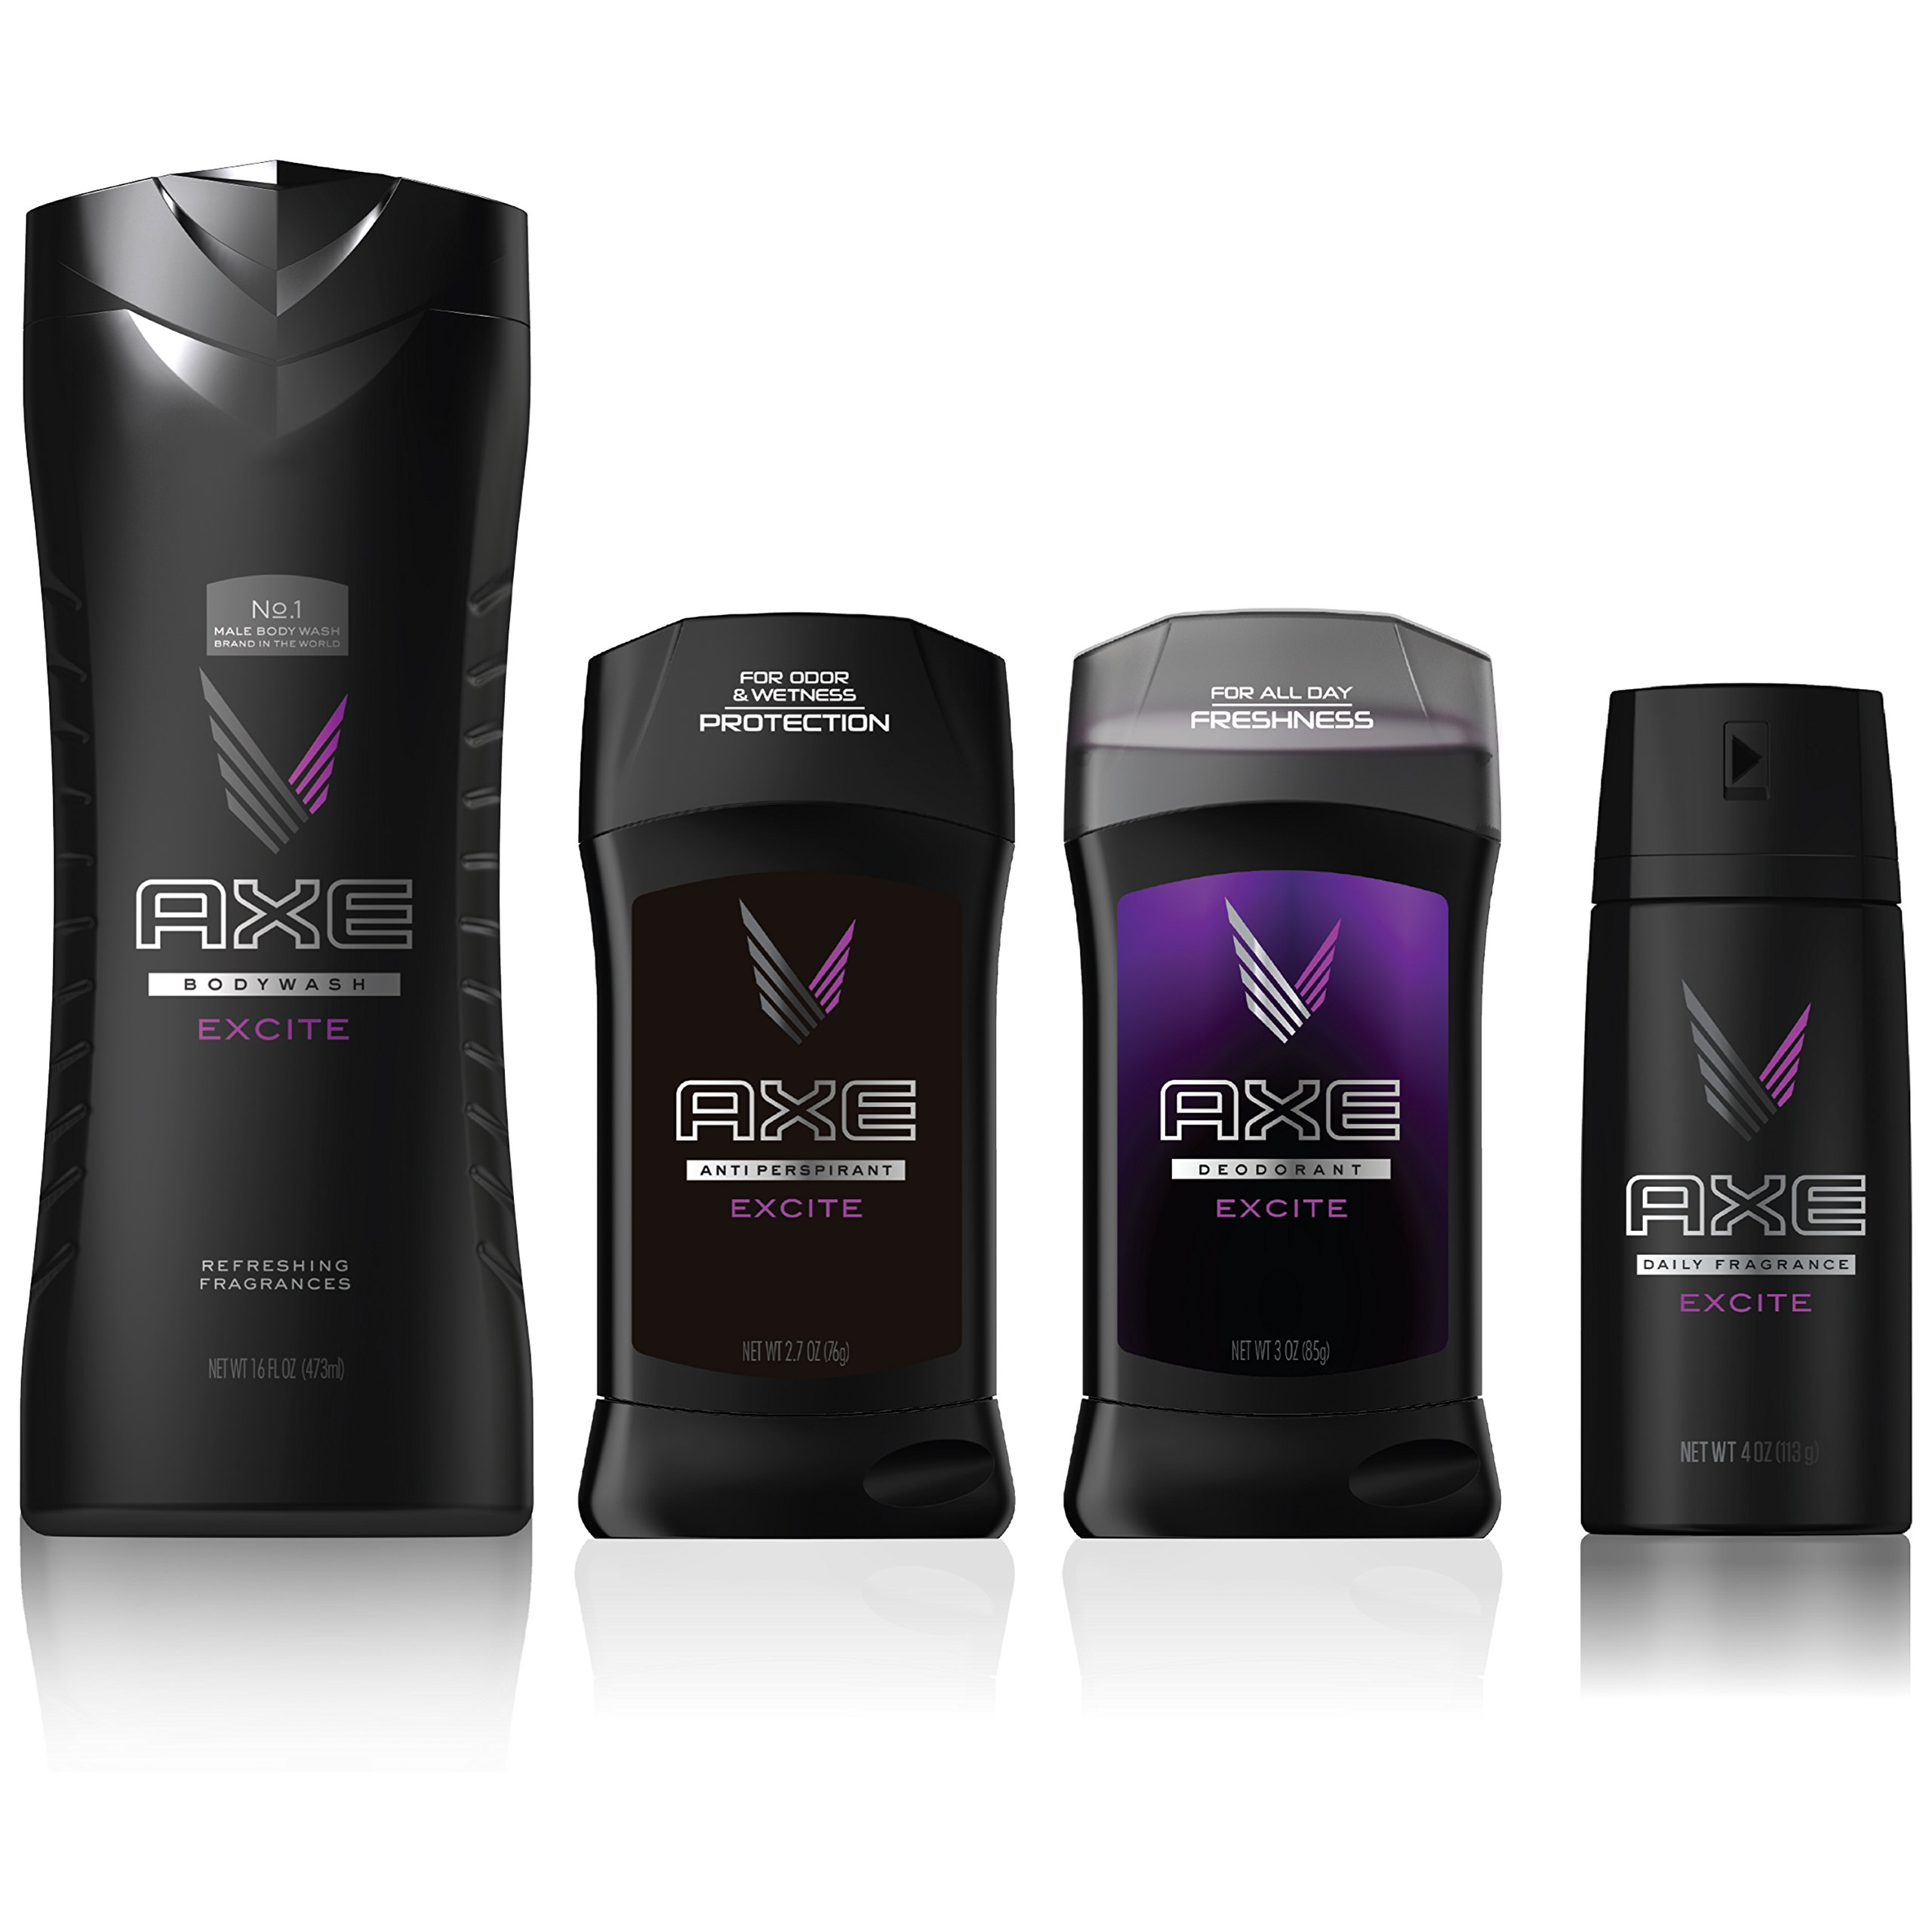 AXE Antiperspirant Deodorant Stick for Men, Excite, 2.7 Ounce (Pack of 6) by AXE (Image #4)